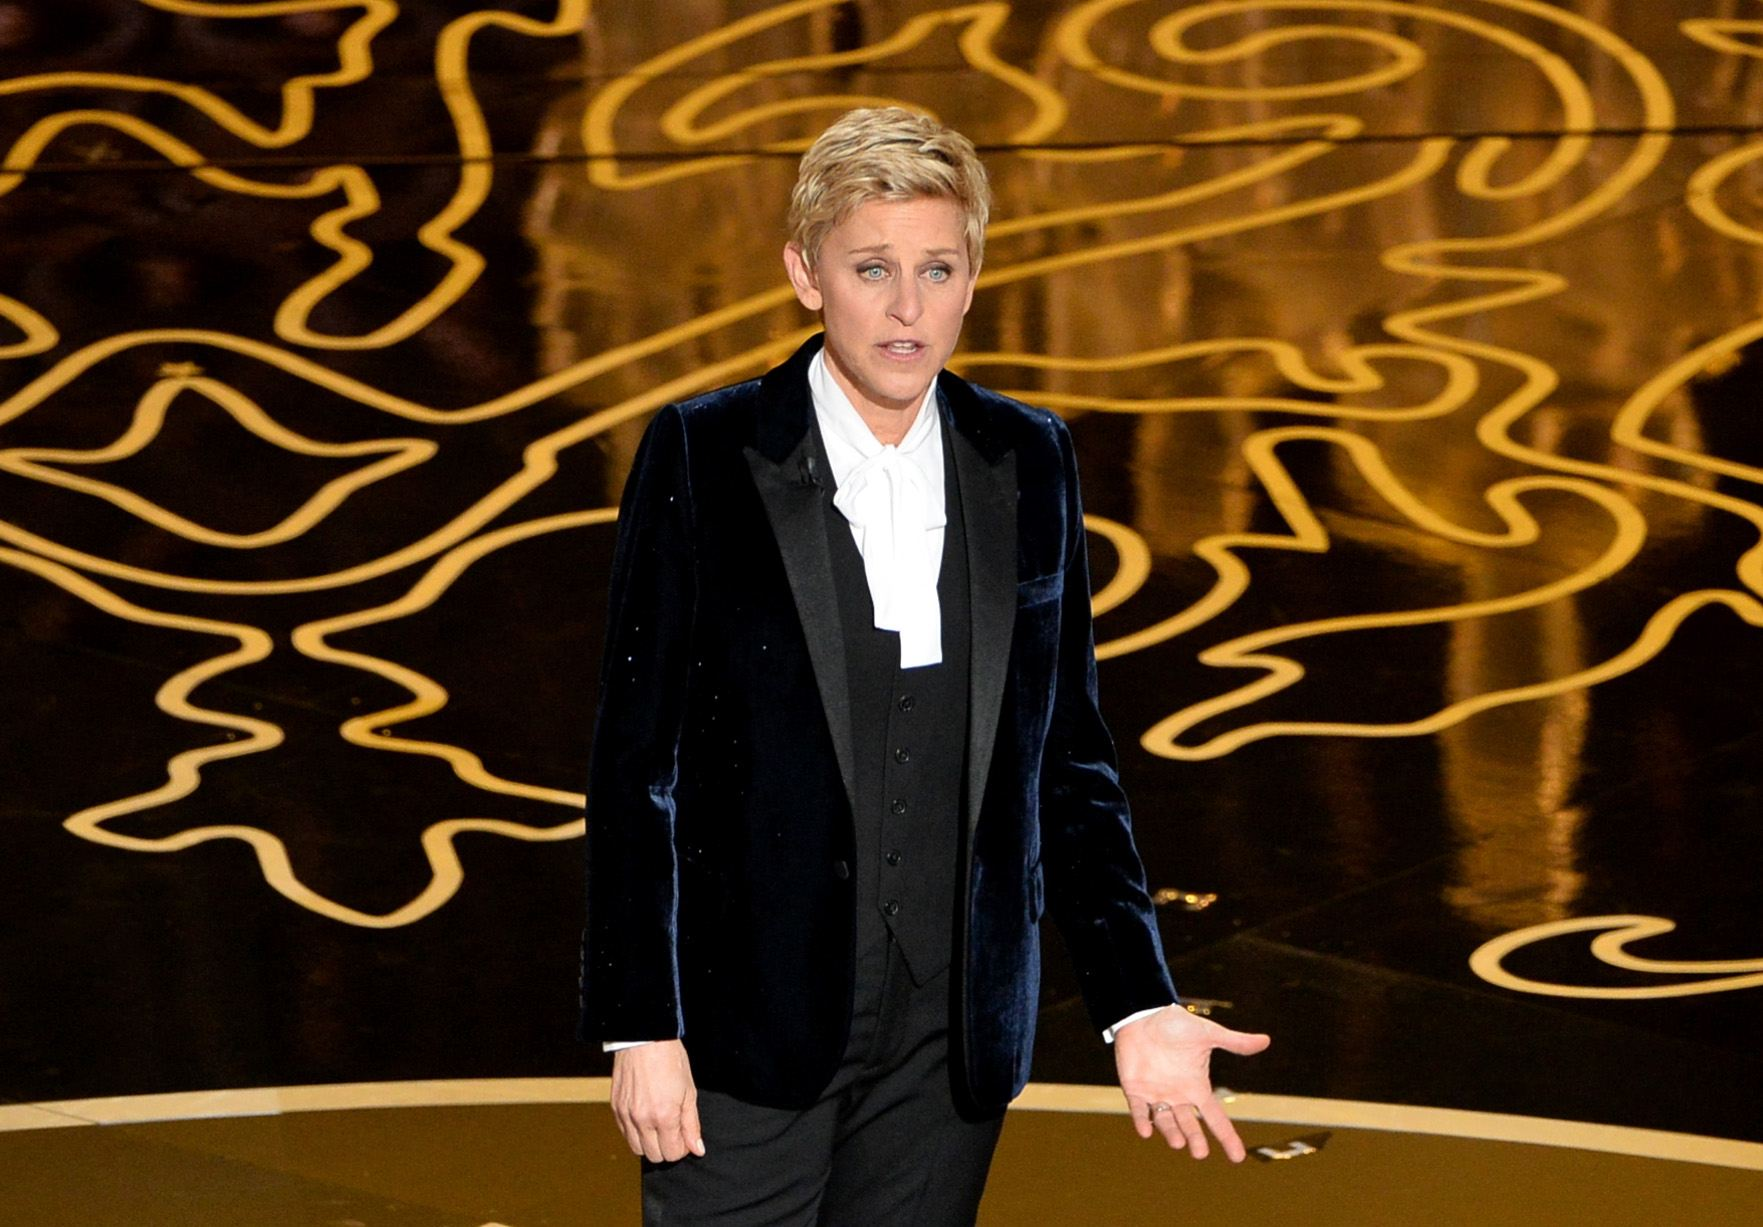 Host Ellen DeGeneres speaks onstage during the Oscars at the Dolby Theatre on March 2, 2014 in Hollywood, California.